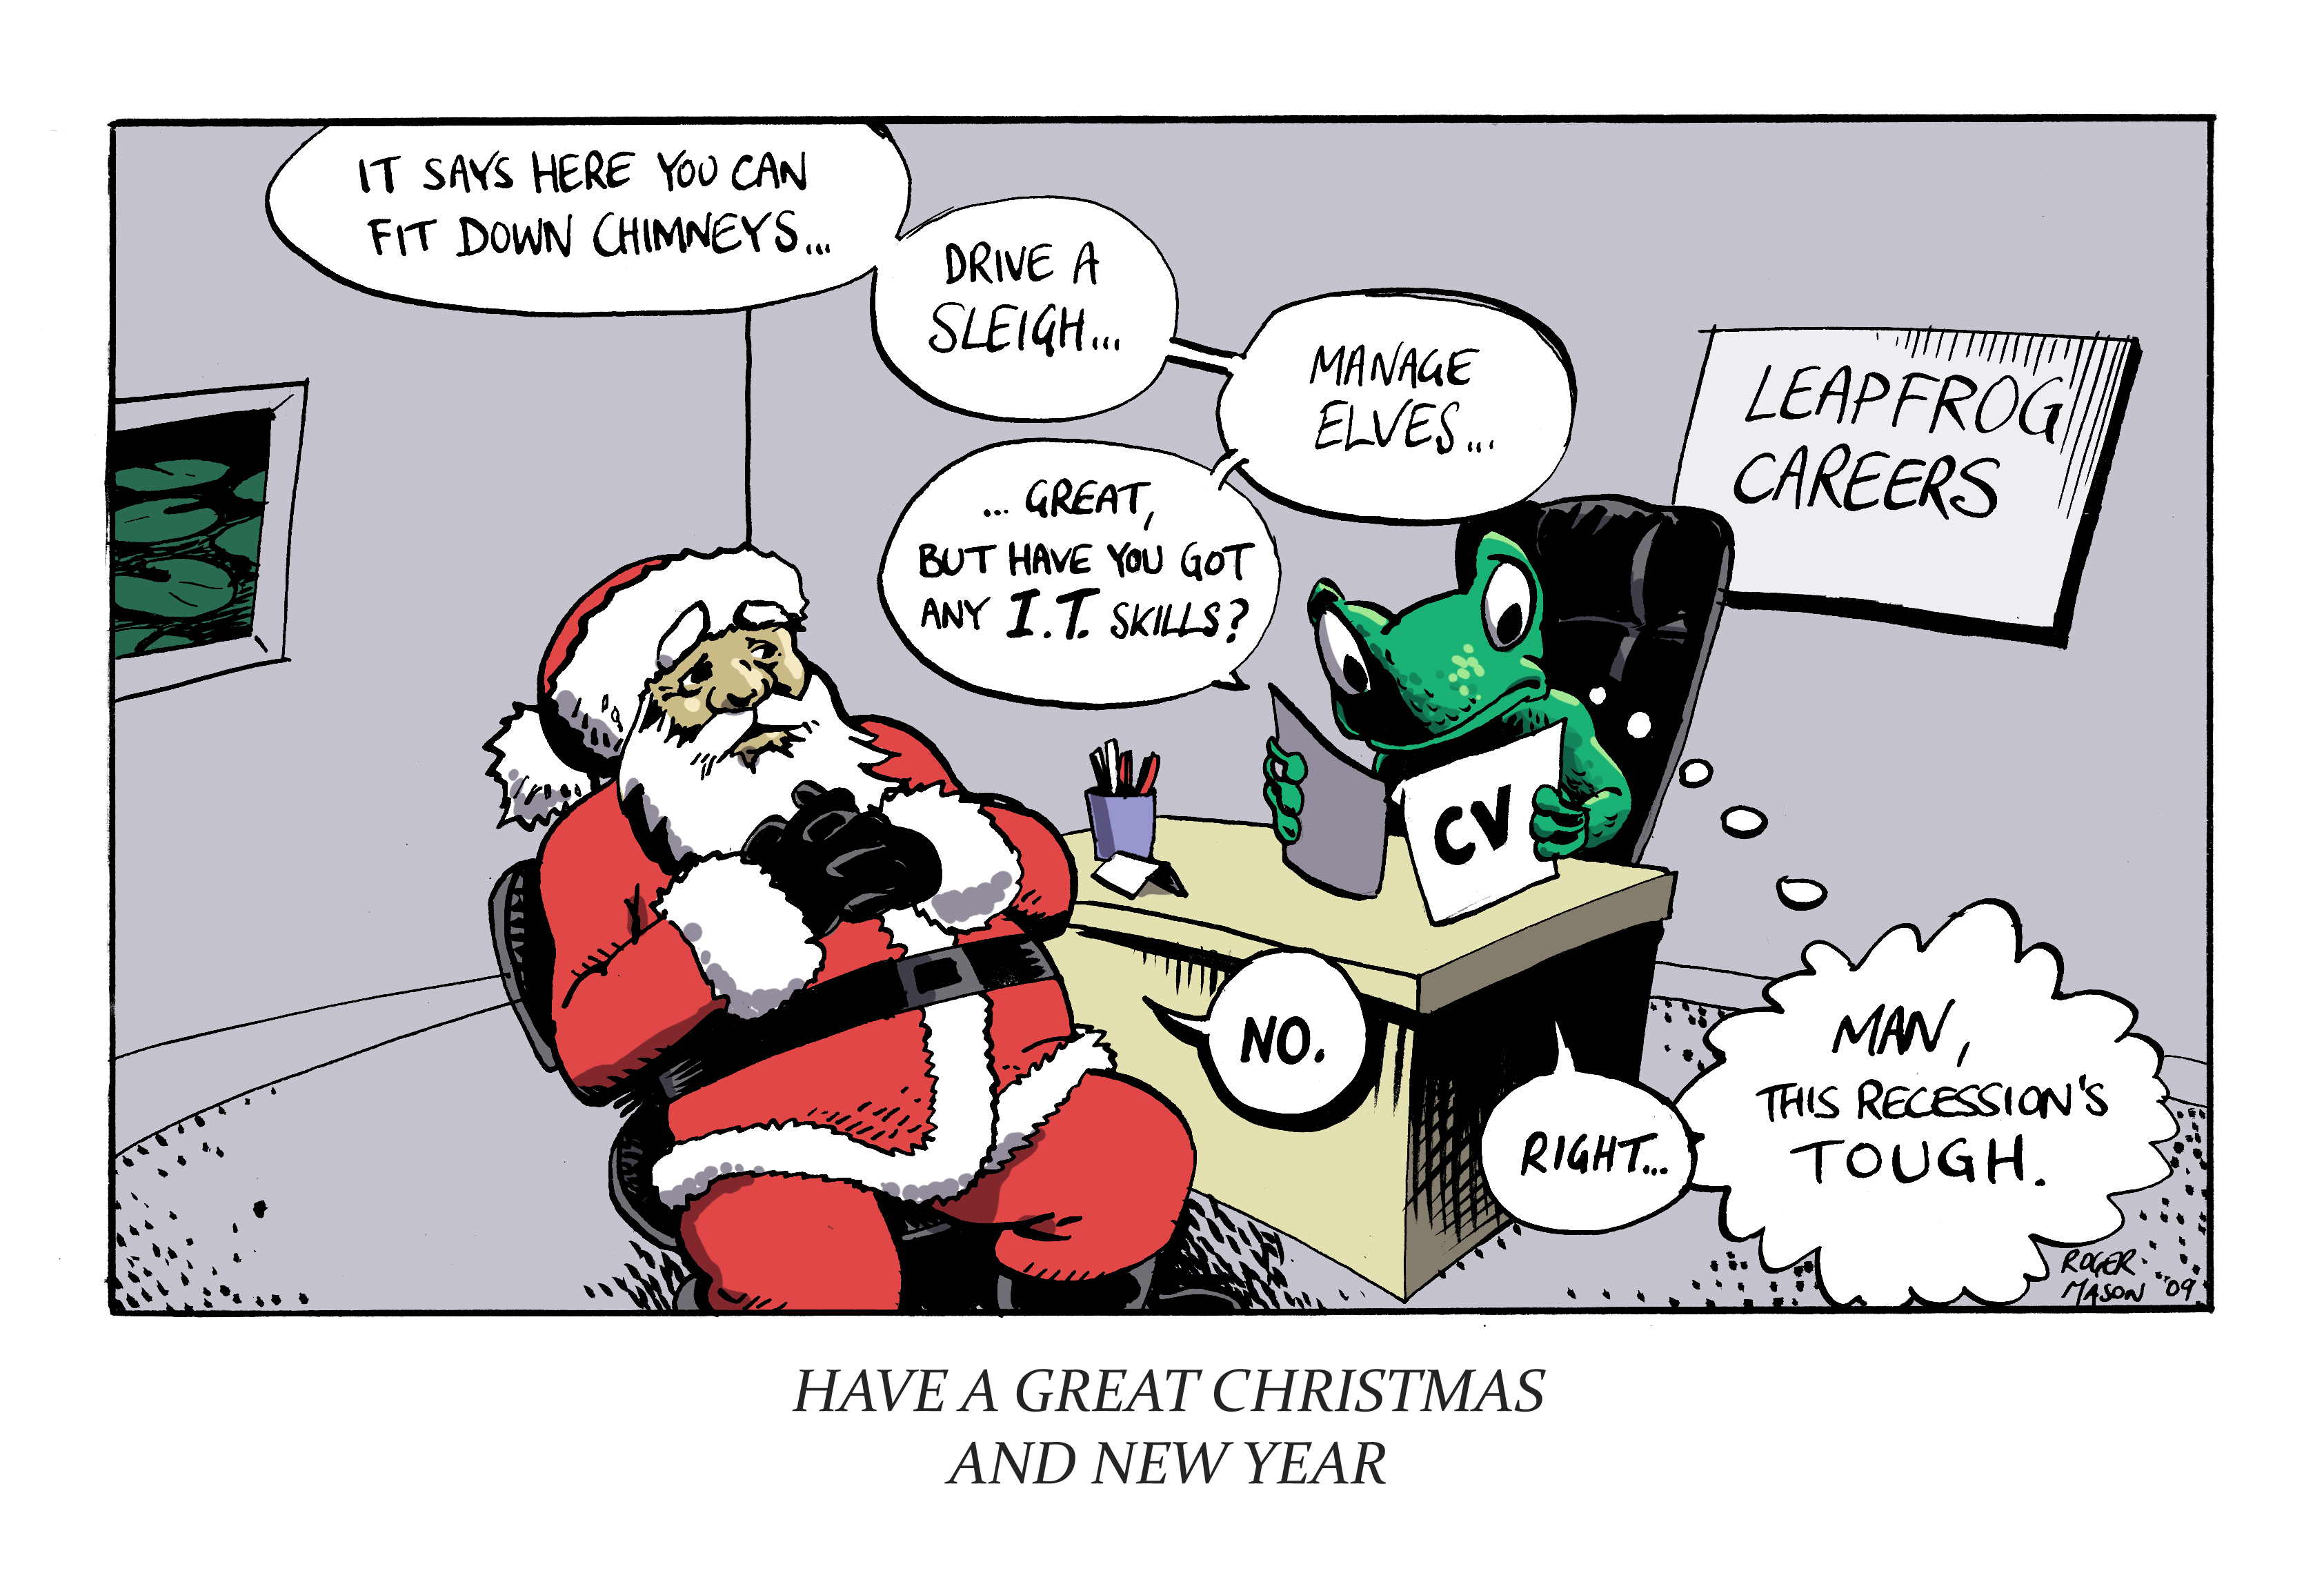 Christmas card for Leapfrog Careers, with an unemployed Santa. Art by Roger Mason